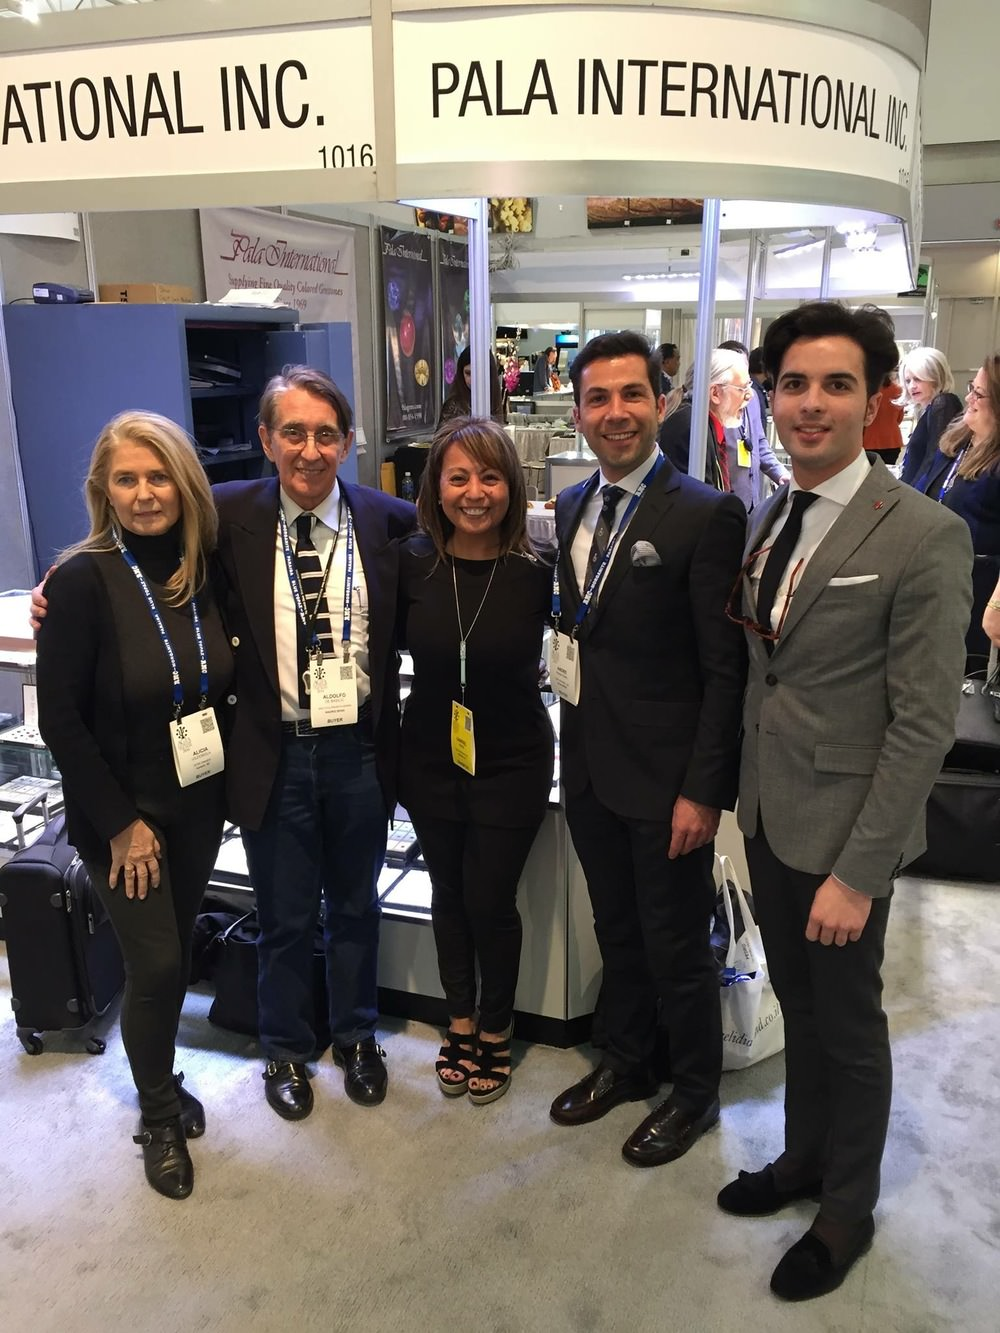 Iberian connection.  Gabrièl Mattice, center, at the AGTA GemFair in Tucson with buyers from Spain and Portugal. From left, Alicia de Vildósola, Adolfo de Basilio, André Neves Bento, Pedro Joaquin Fernandez De Ulloa Molina.